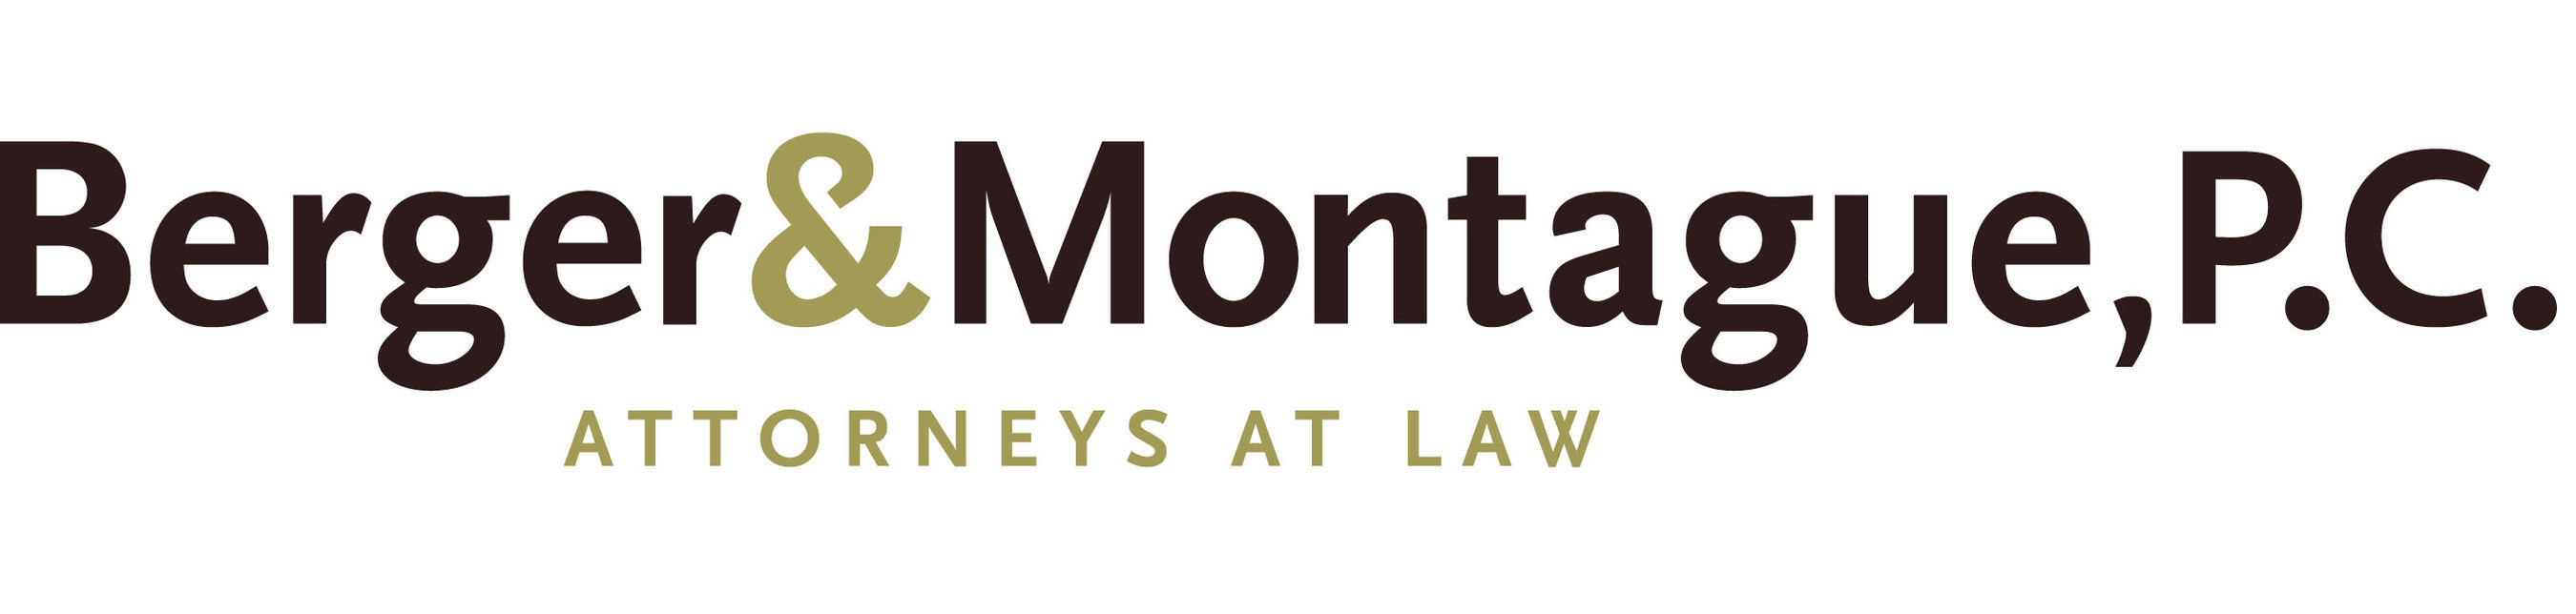 A full-spectrum class action and complex civil litigation law firm, with nationally known attorneys highly sought after for their legal skills.